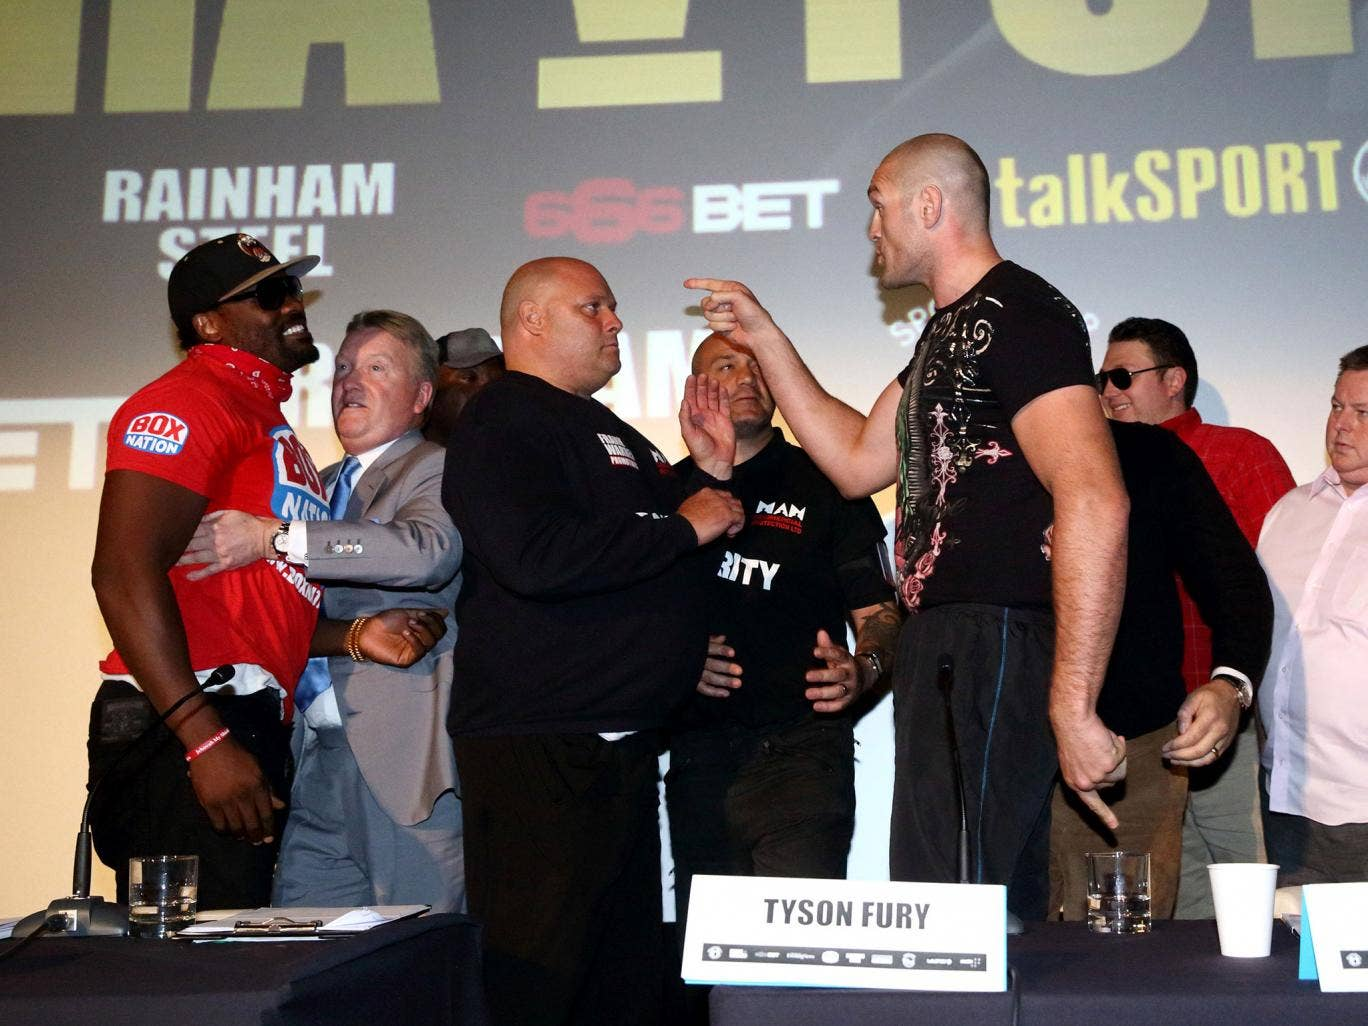 Dereck Chisora And Tyson Fury go head-to-head as they make a £10,000 side-bet during a press conference to announce the upcoming fight